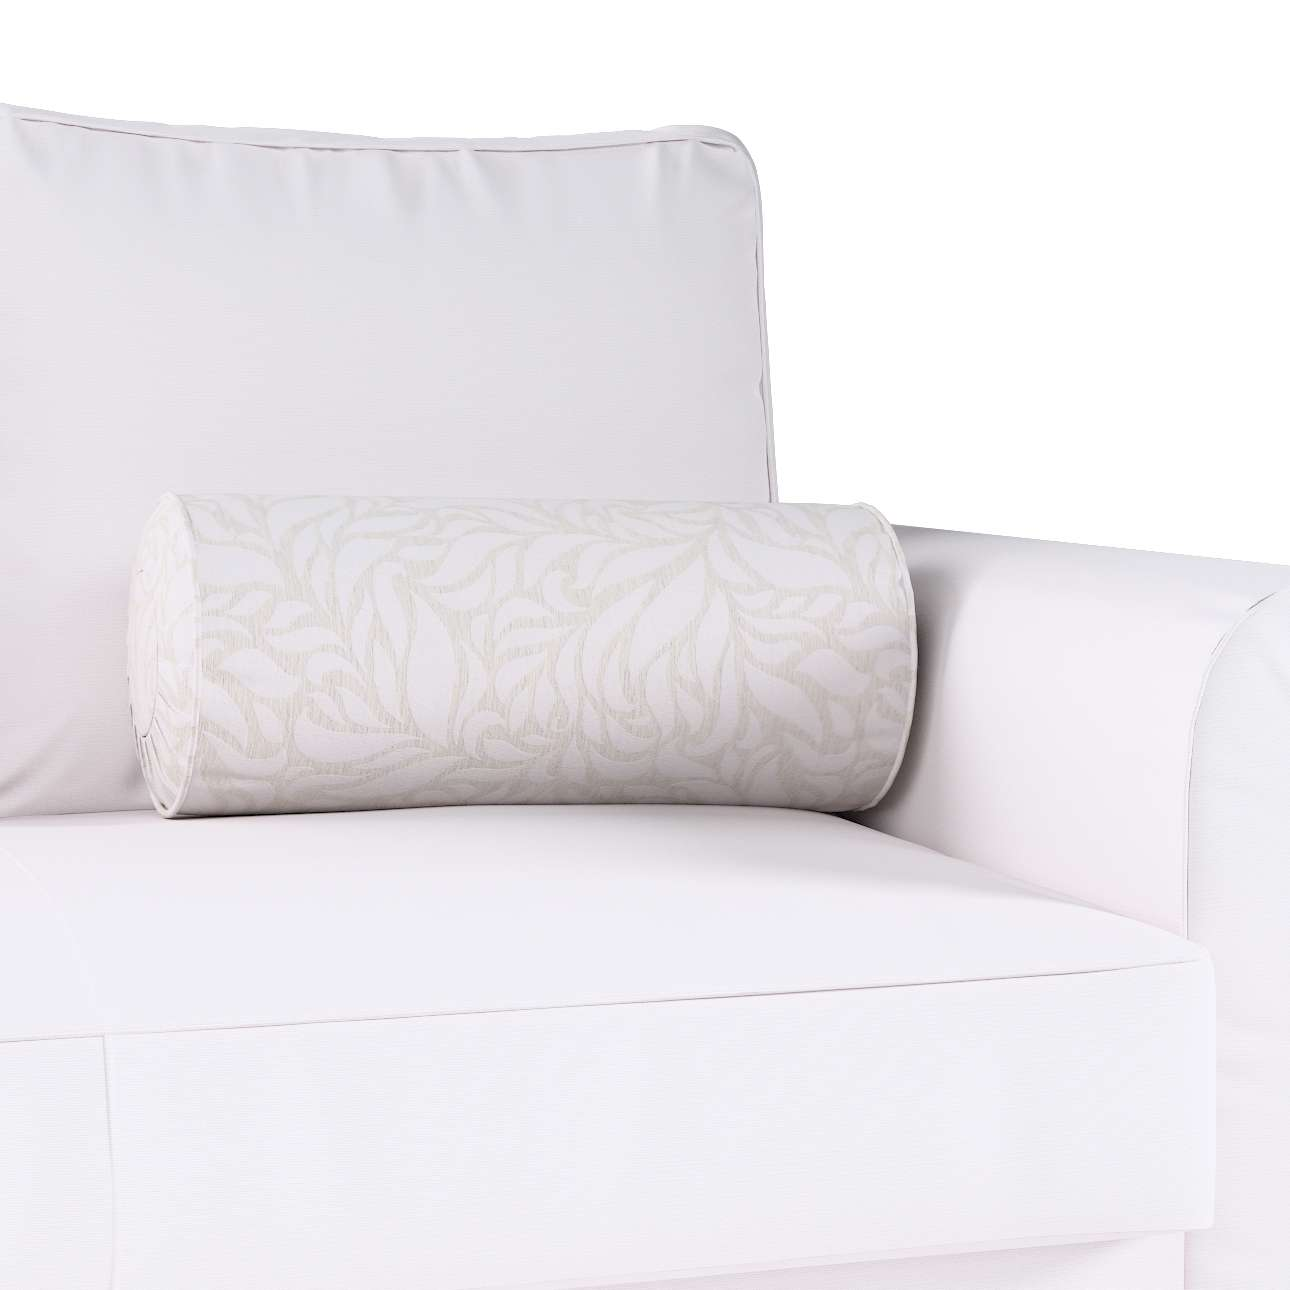 Bolster cushion with pleats in collection Venice, fabric: 140-50